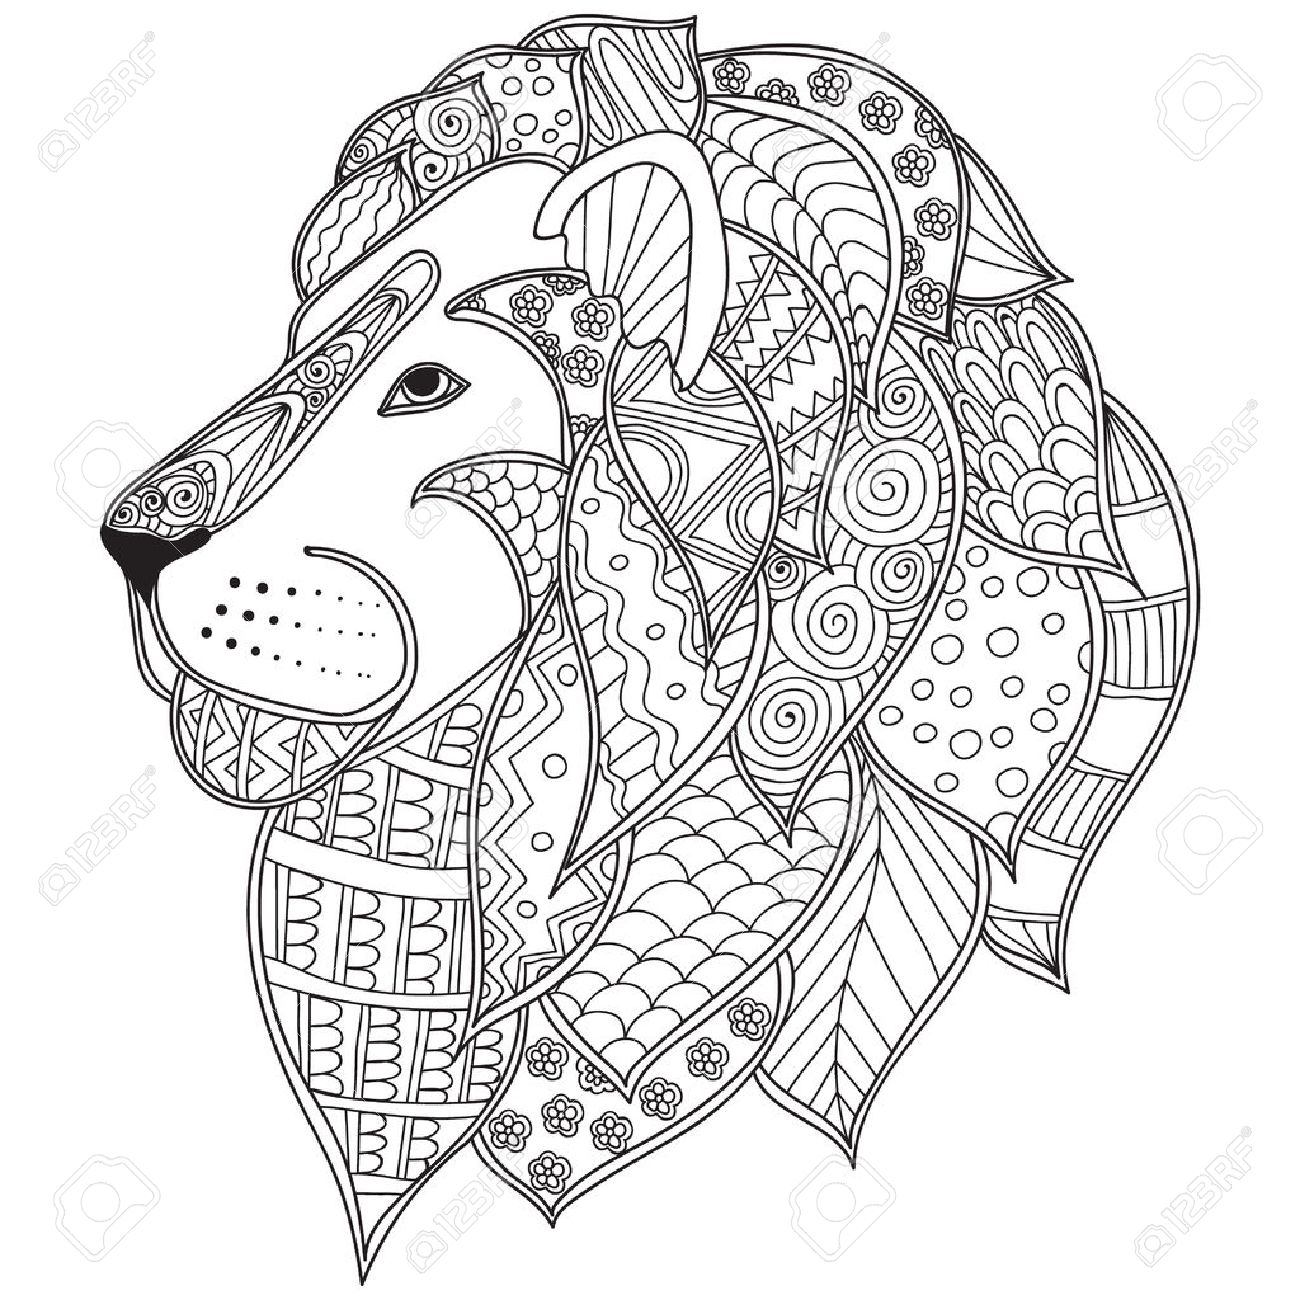 Coloring Pages Lion Head. Hand drawn ornamental outline lion head illustration decorated with  abstract doodles Coloring pages for adults Drawn Ornamental Outline Lion Head Illustration Decorated